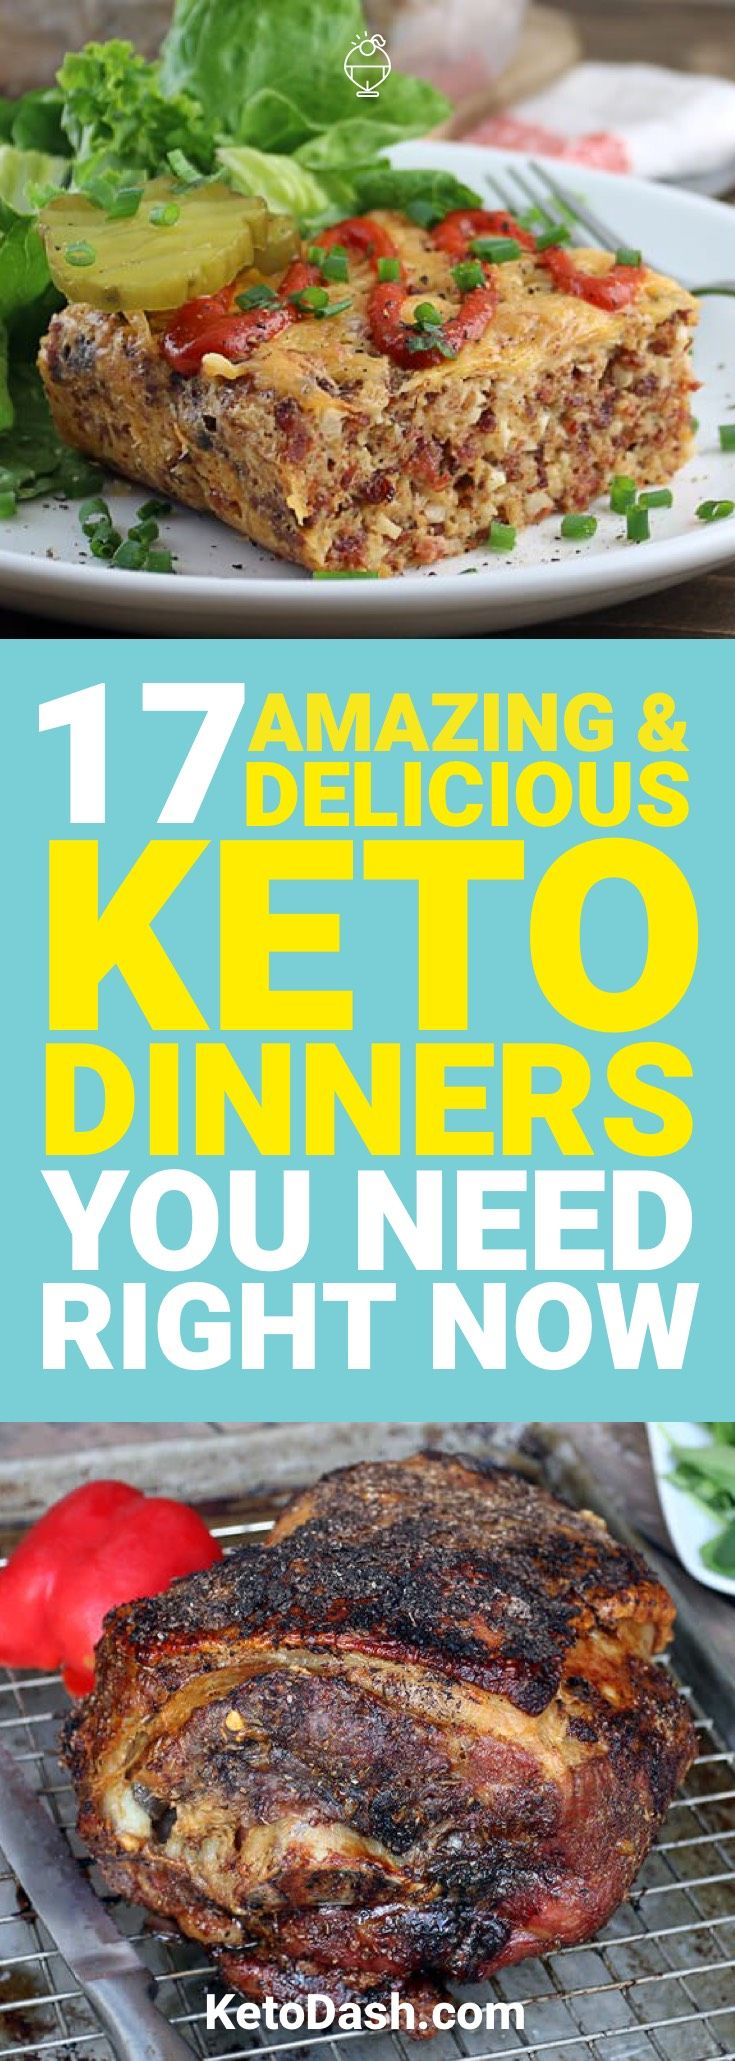 The ketogenic diet allows you to have a wide variety of different foods. Here are 17 keto dinners that you need to have right now.